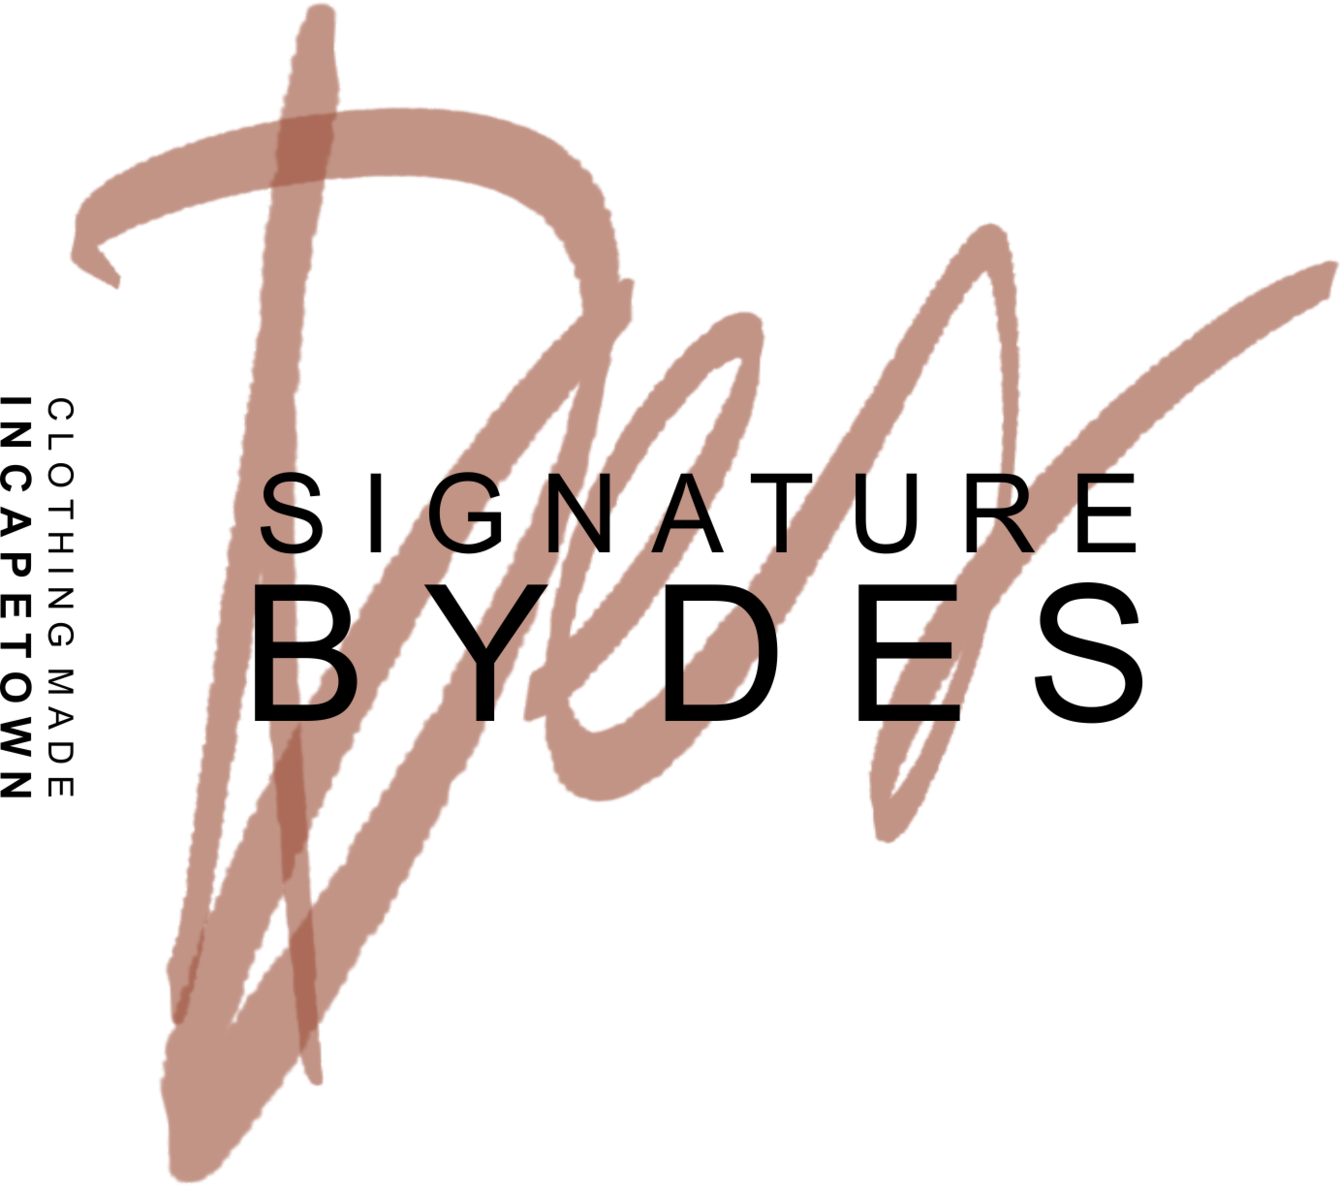 Signature by Des